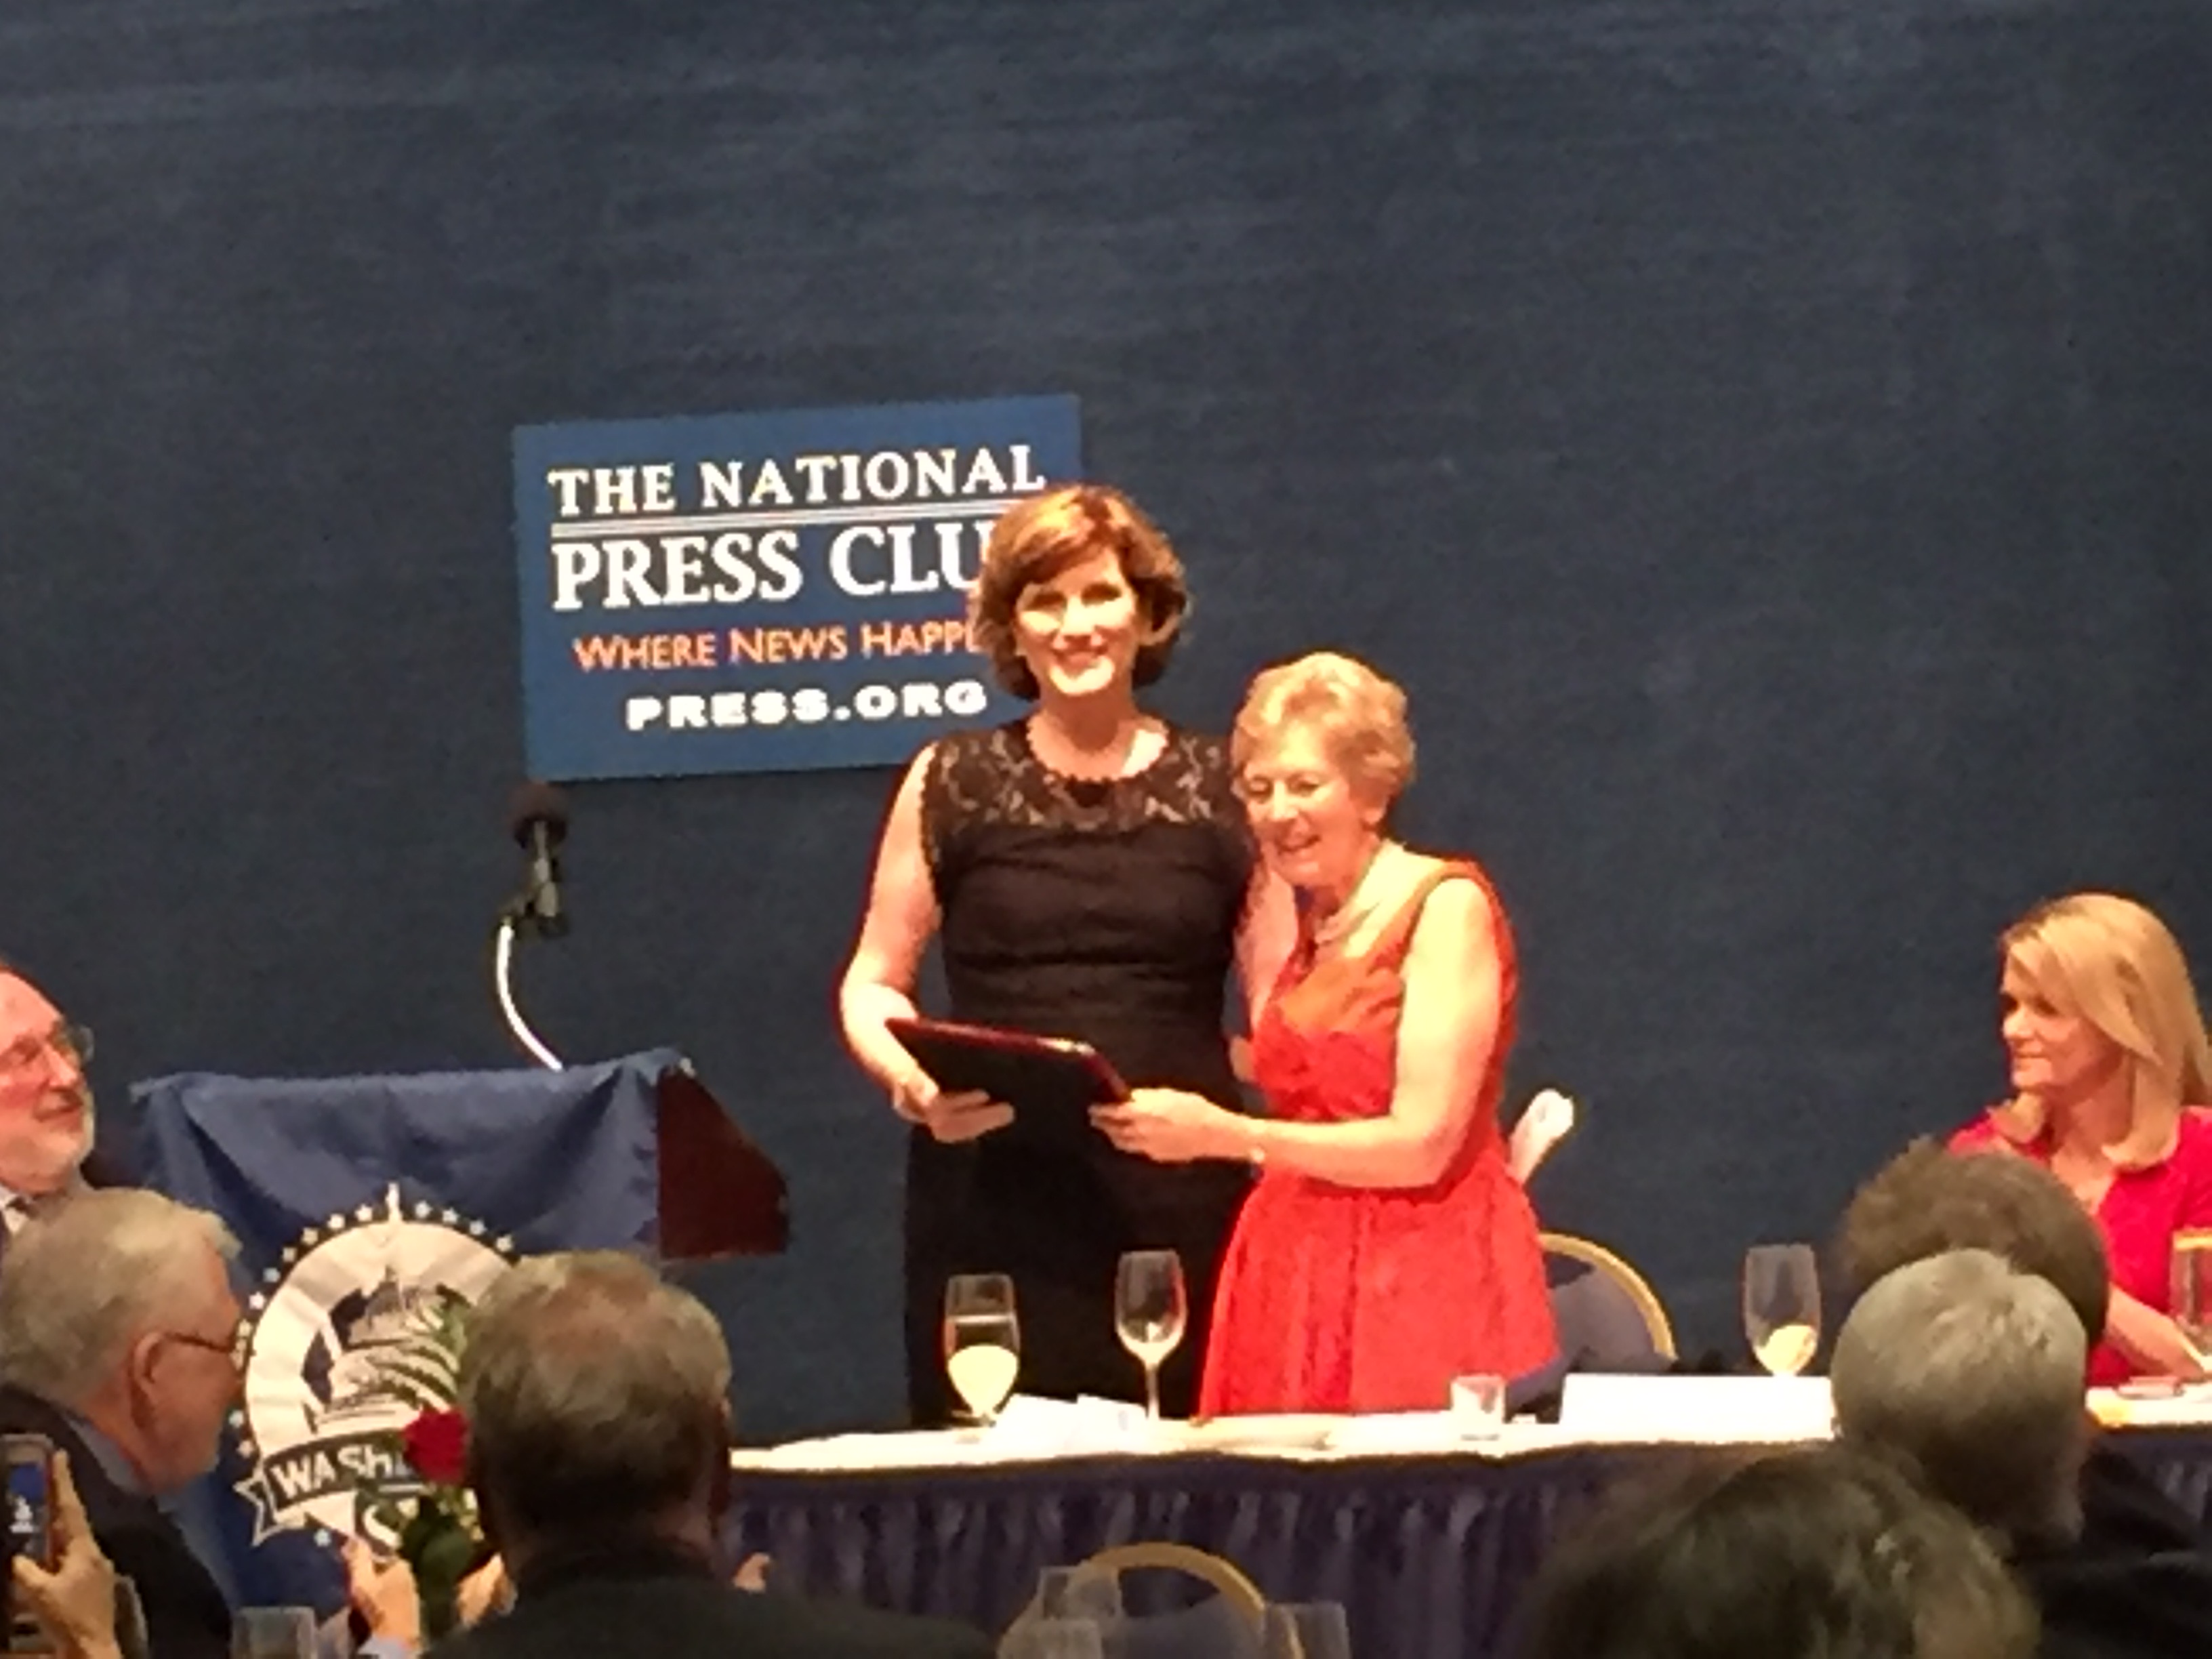 2017 Distinguished Service Award winner Lucy Dalglish accepts her plaque from outgoing SPJ-DC chapter president Kathleen Burns